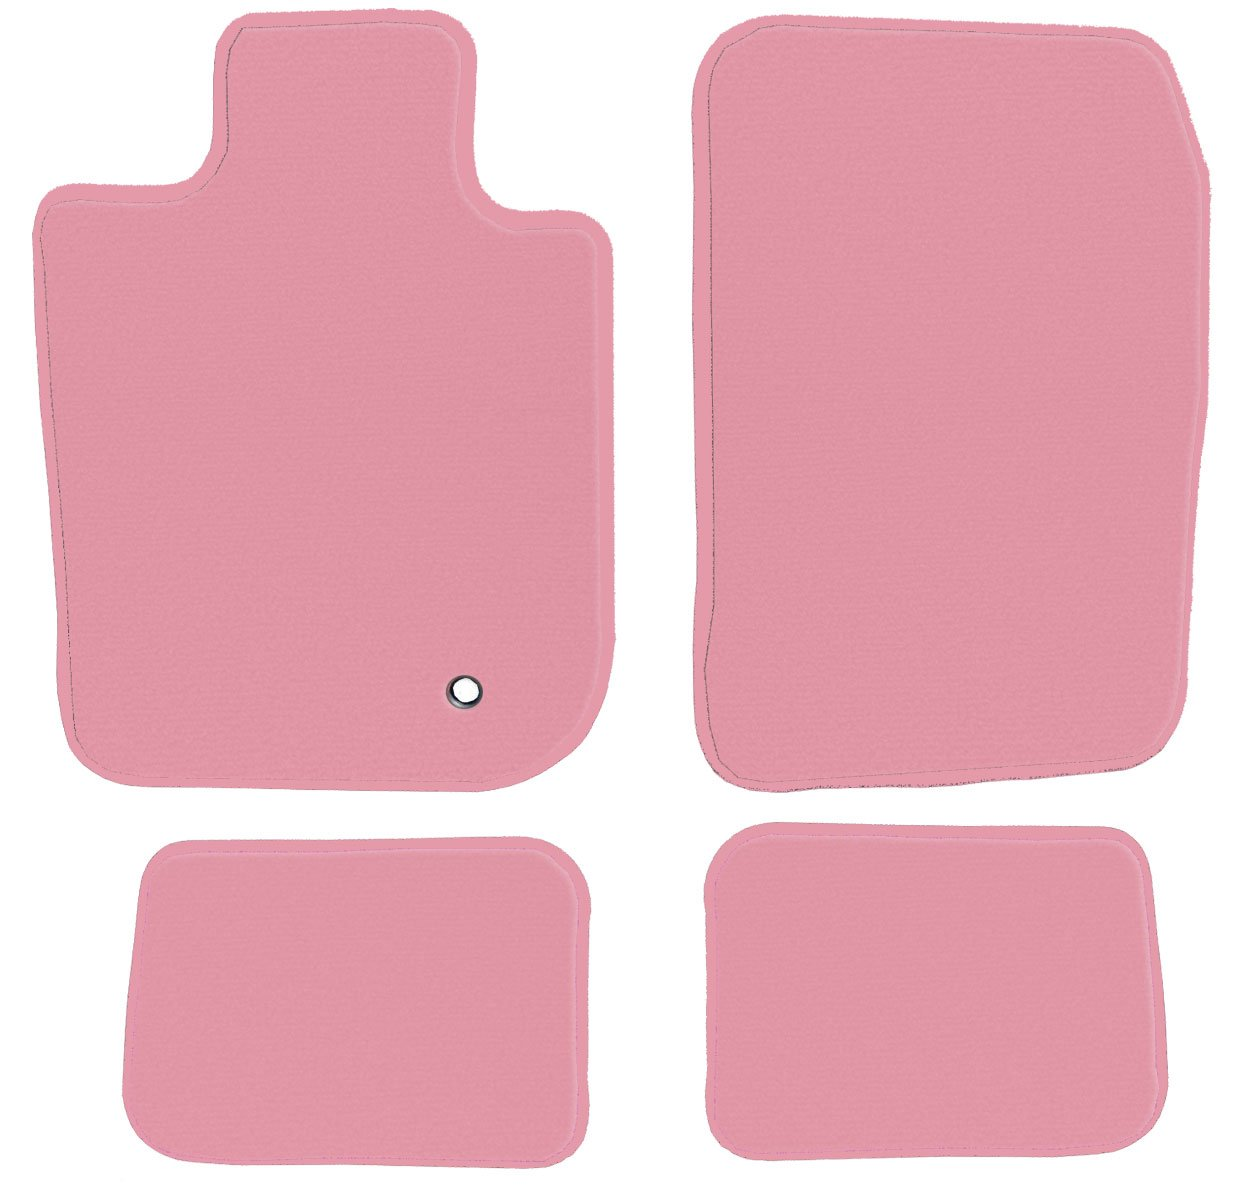 1997 Passenger /& Rear GGBAILEY D4565A-S2B-PNK Custom Fit Automotive Carpet Floor Mats for 1996 1998 1999 2000 Plymouth Voyager Pink Driver